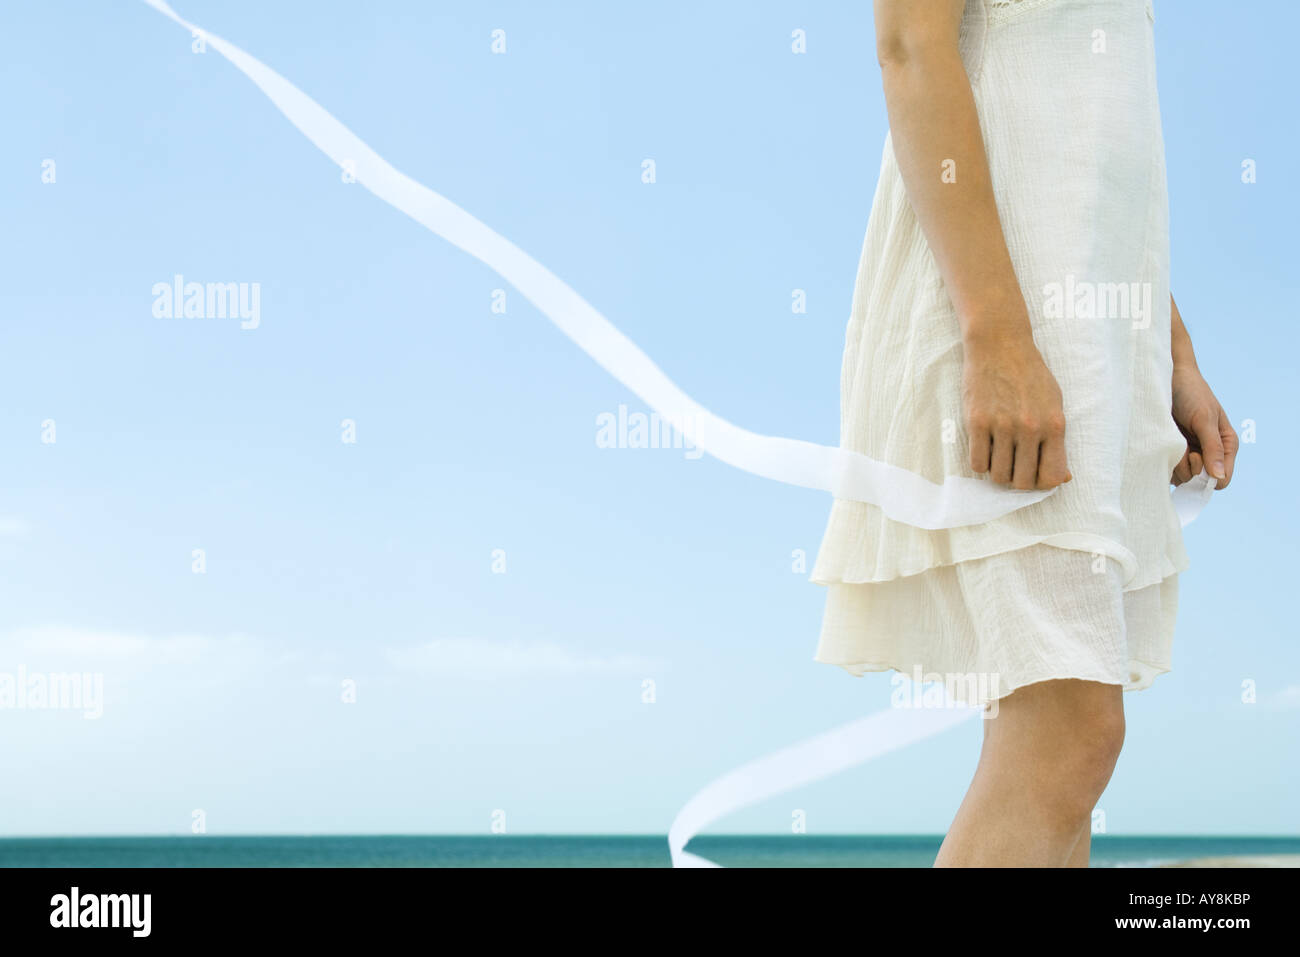 Woman in dress holding ribbon, tousled by wind, low angle view, cropped - Stock Image